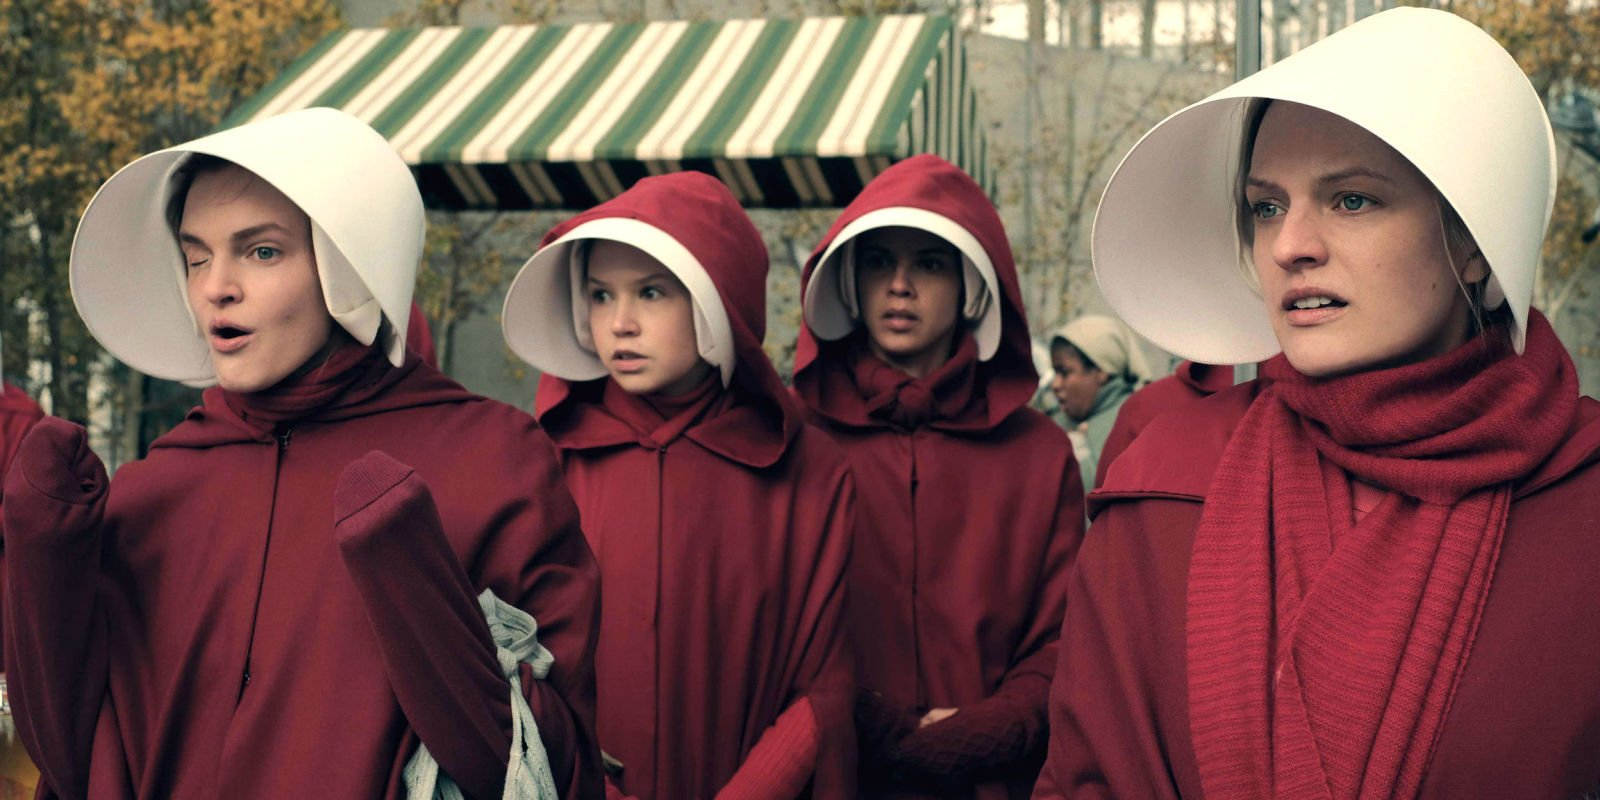 The Handmaid's Tale season 2 first look photo teases gruesome future for Elisabeth Moss's Offred